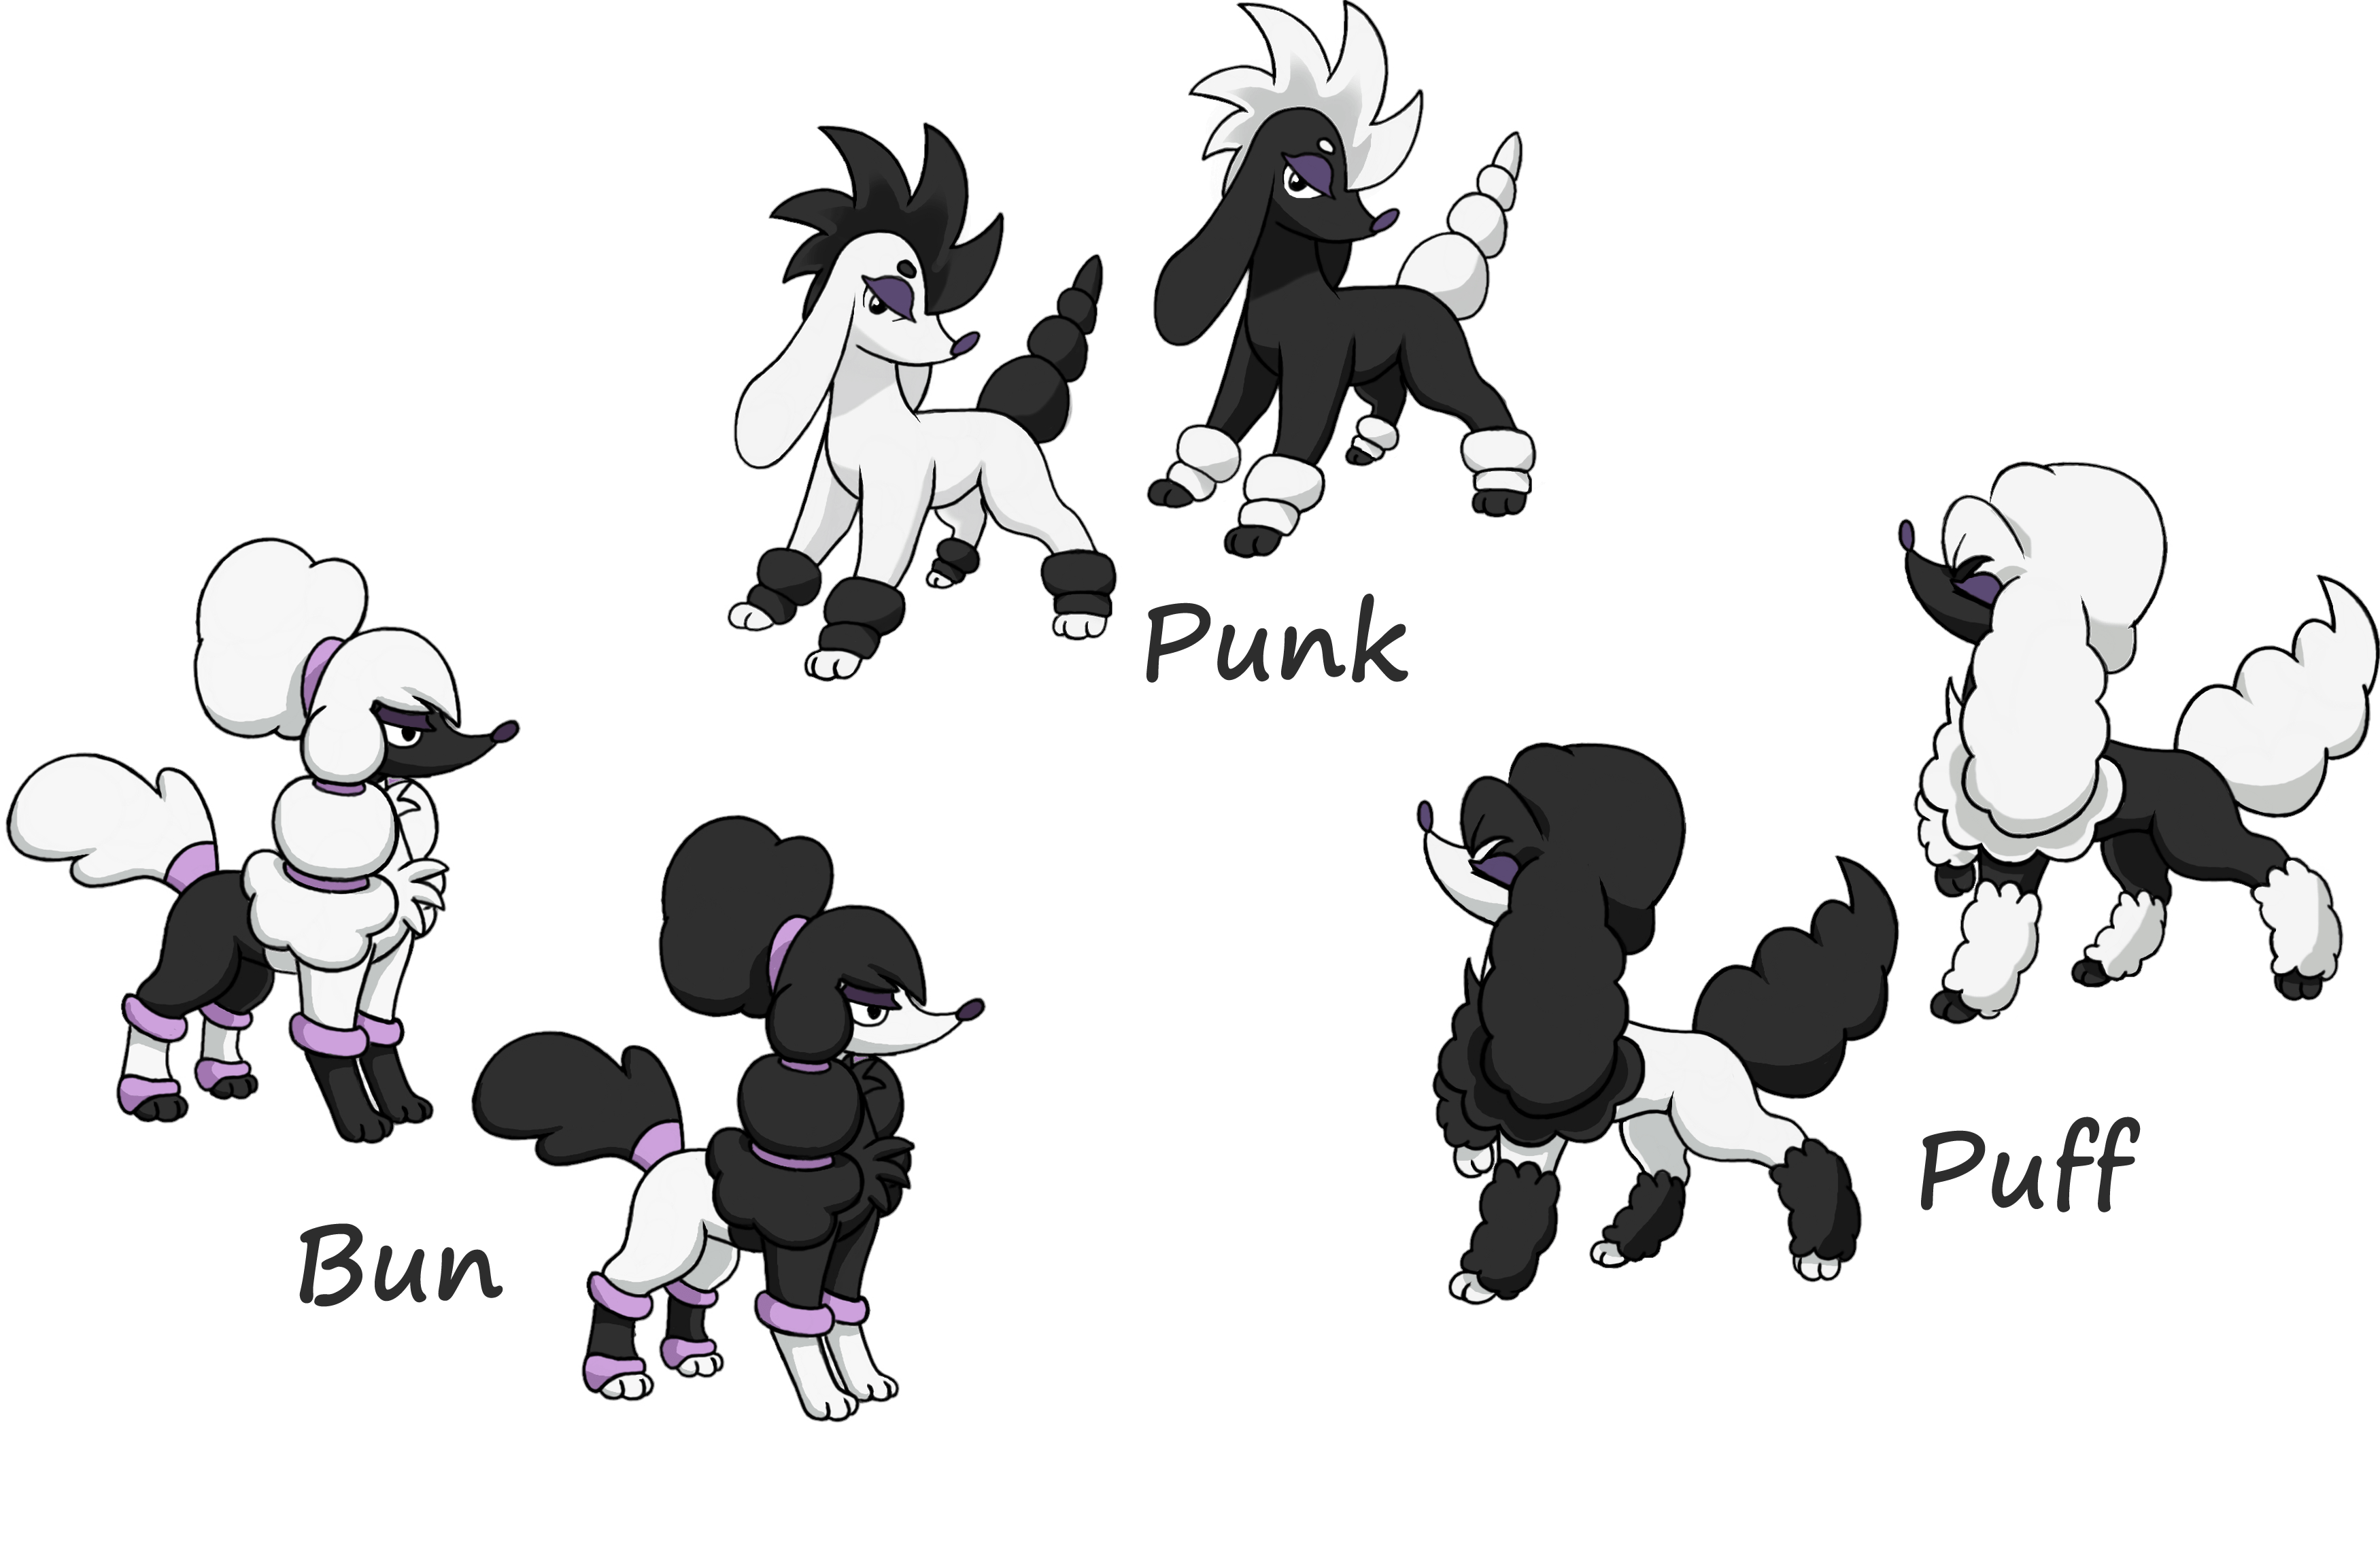 New Furfrou trims I made up by Bman-64 on DeviantArt